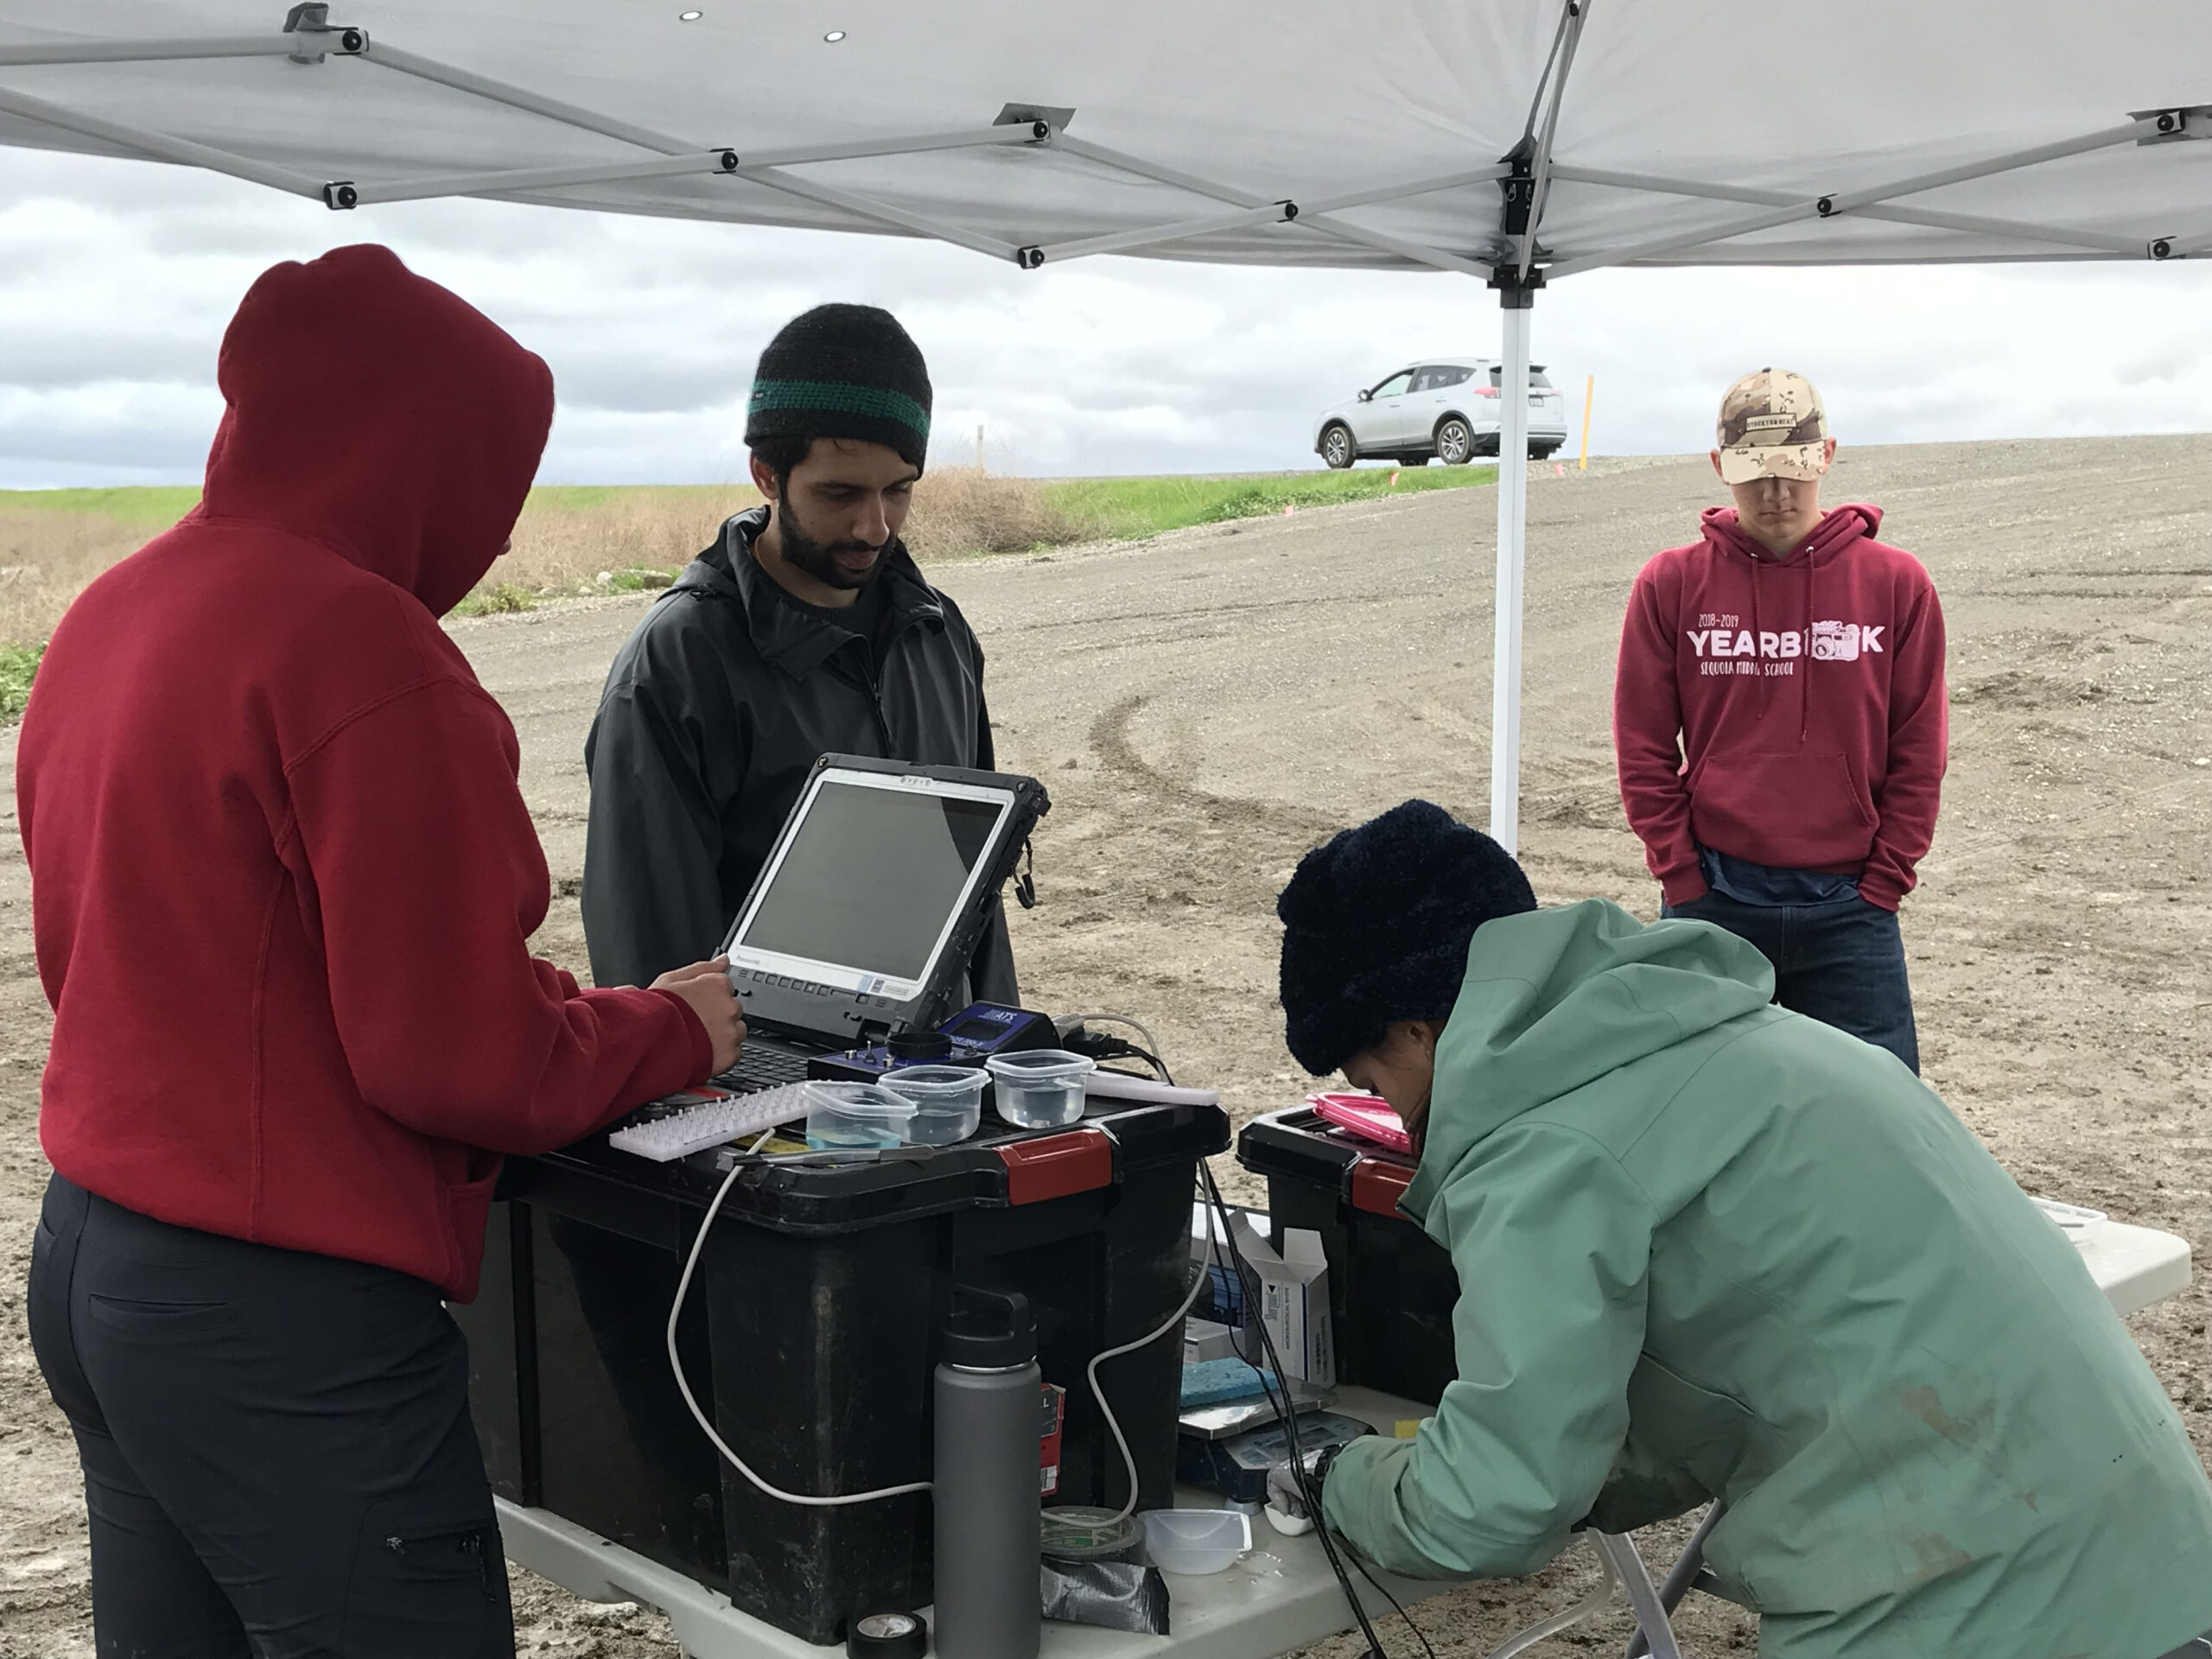 UC Davis fish surgery team all ready to get to work tagging fish and recording all the data.